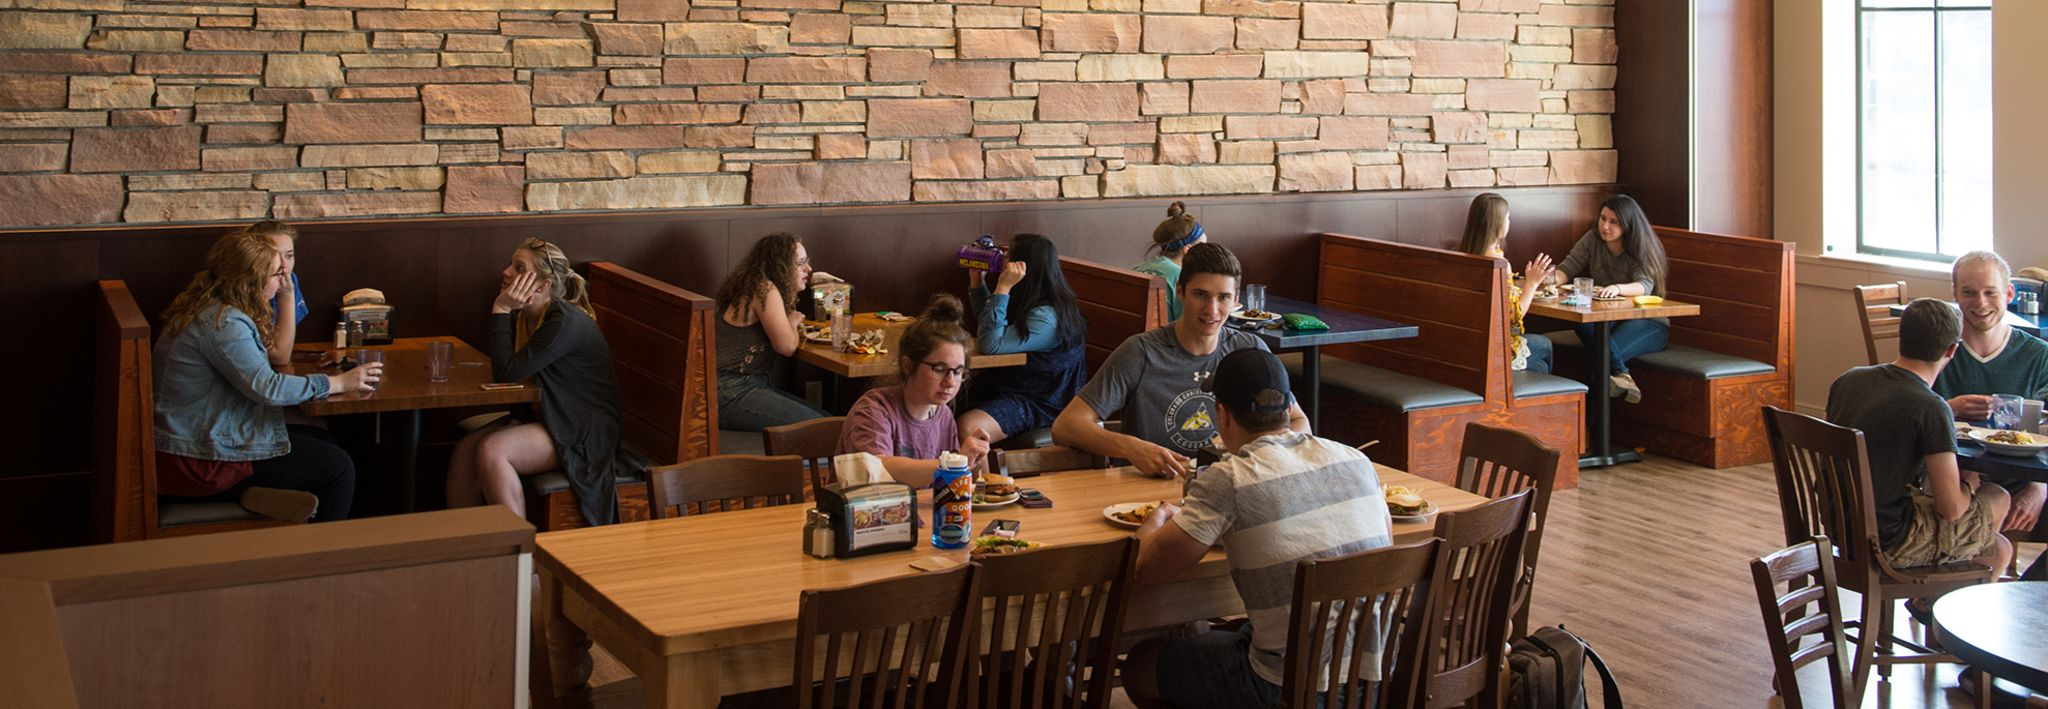 CCU students eating in the dining hall.